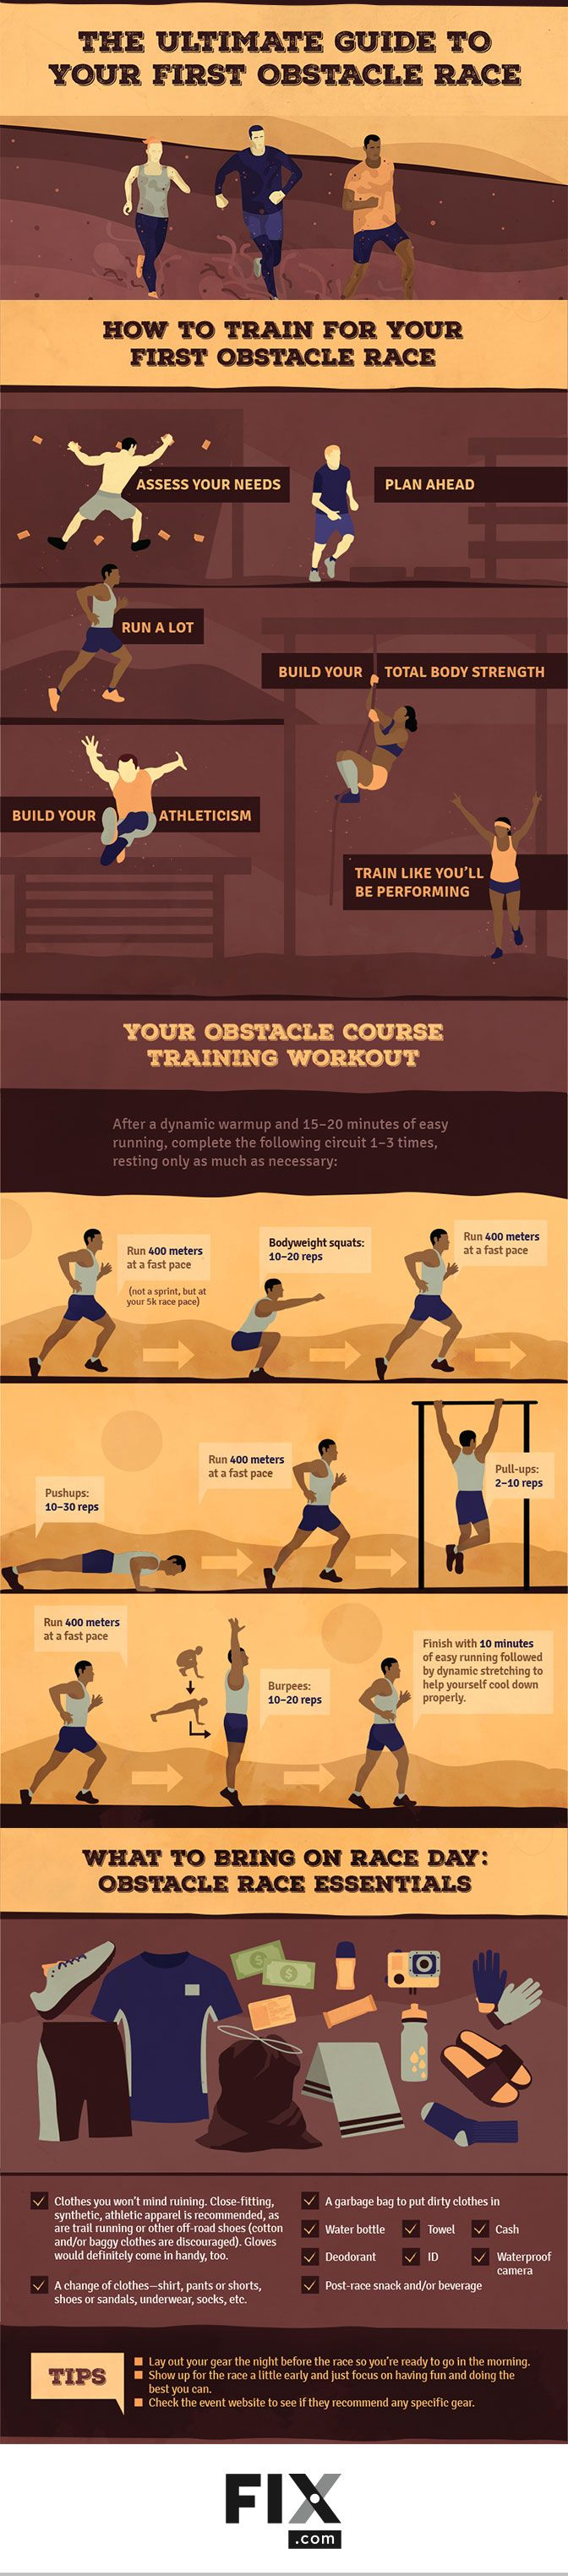 The Ultimate Guide to Your First Obstacle Race